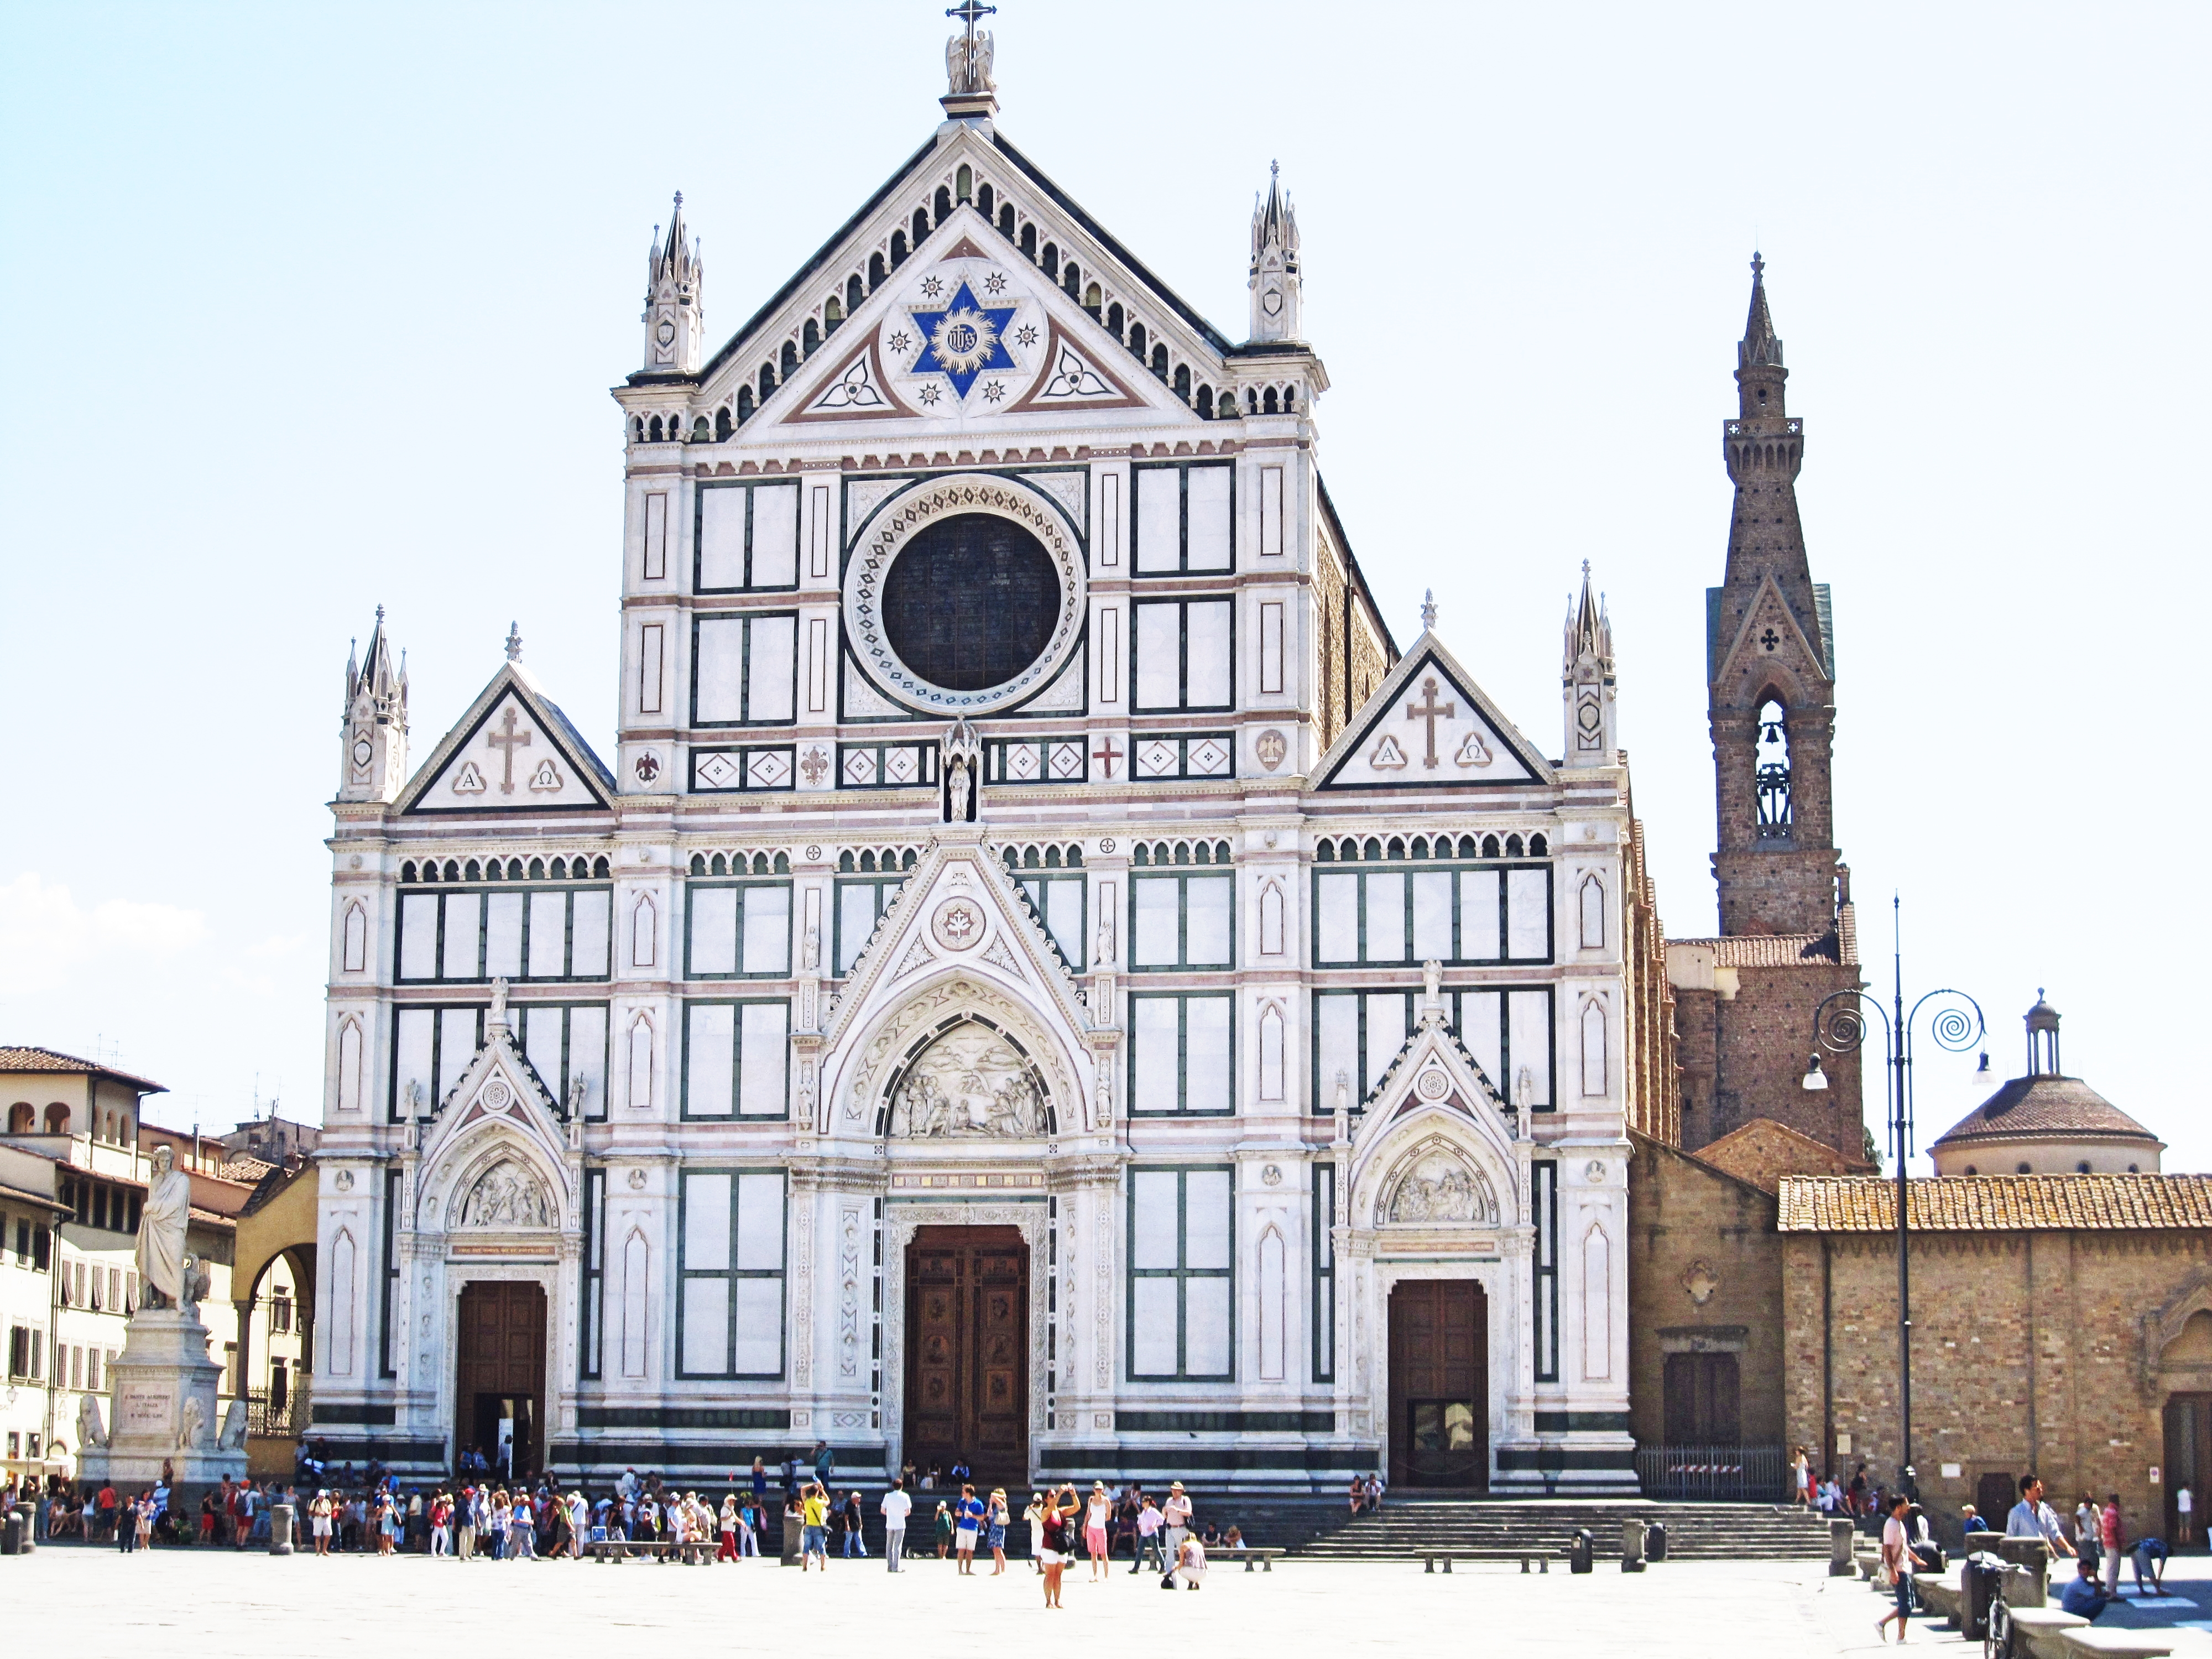 The Basilica de Santa Groce houses the tombs of many influential Italian personalities